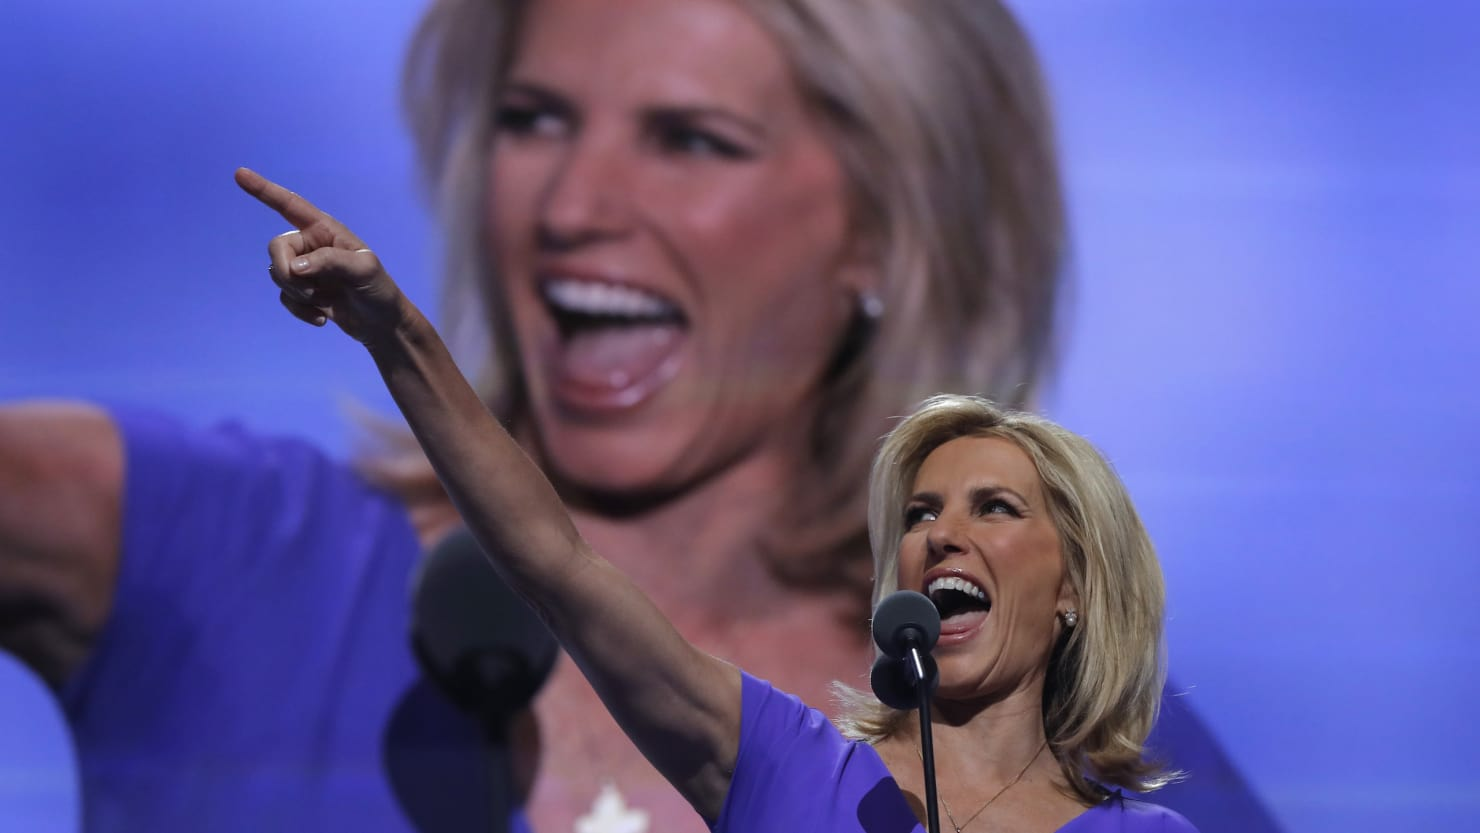 Laura Ingraham speaking for Trump at 2016 Republican convention.